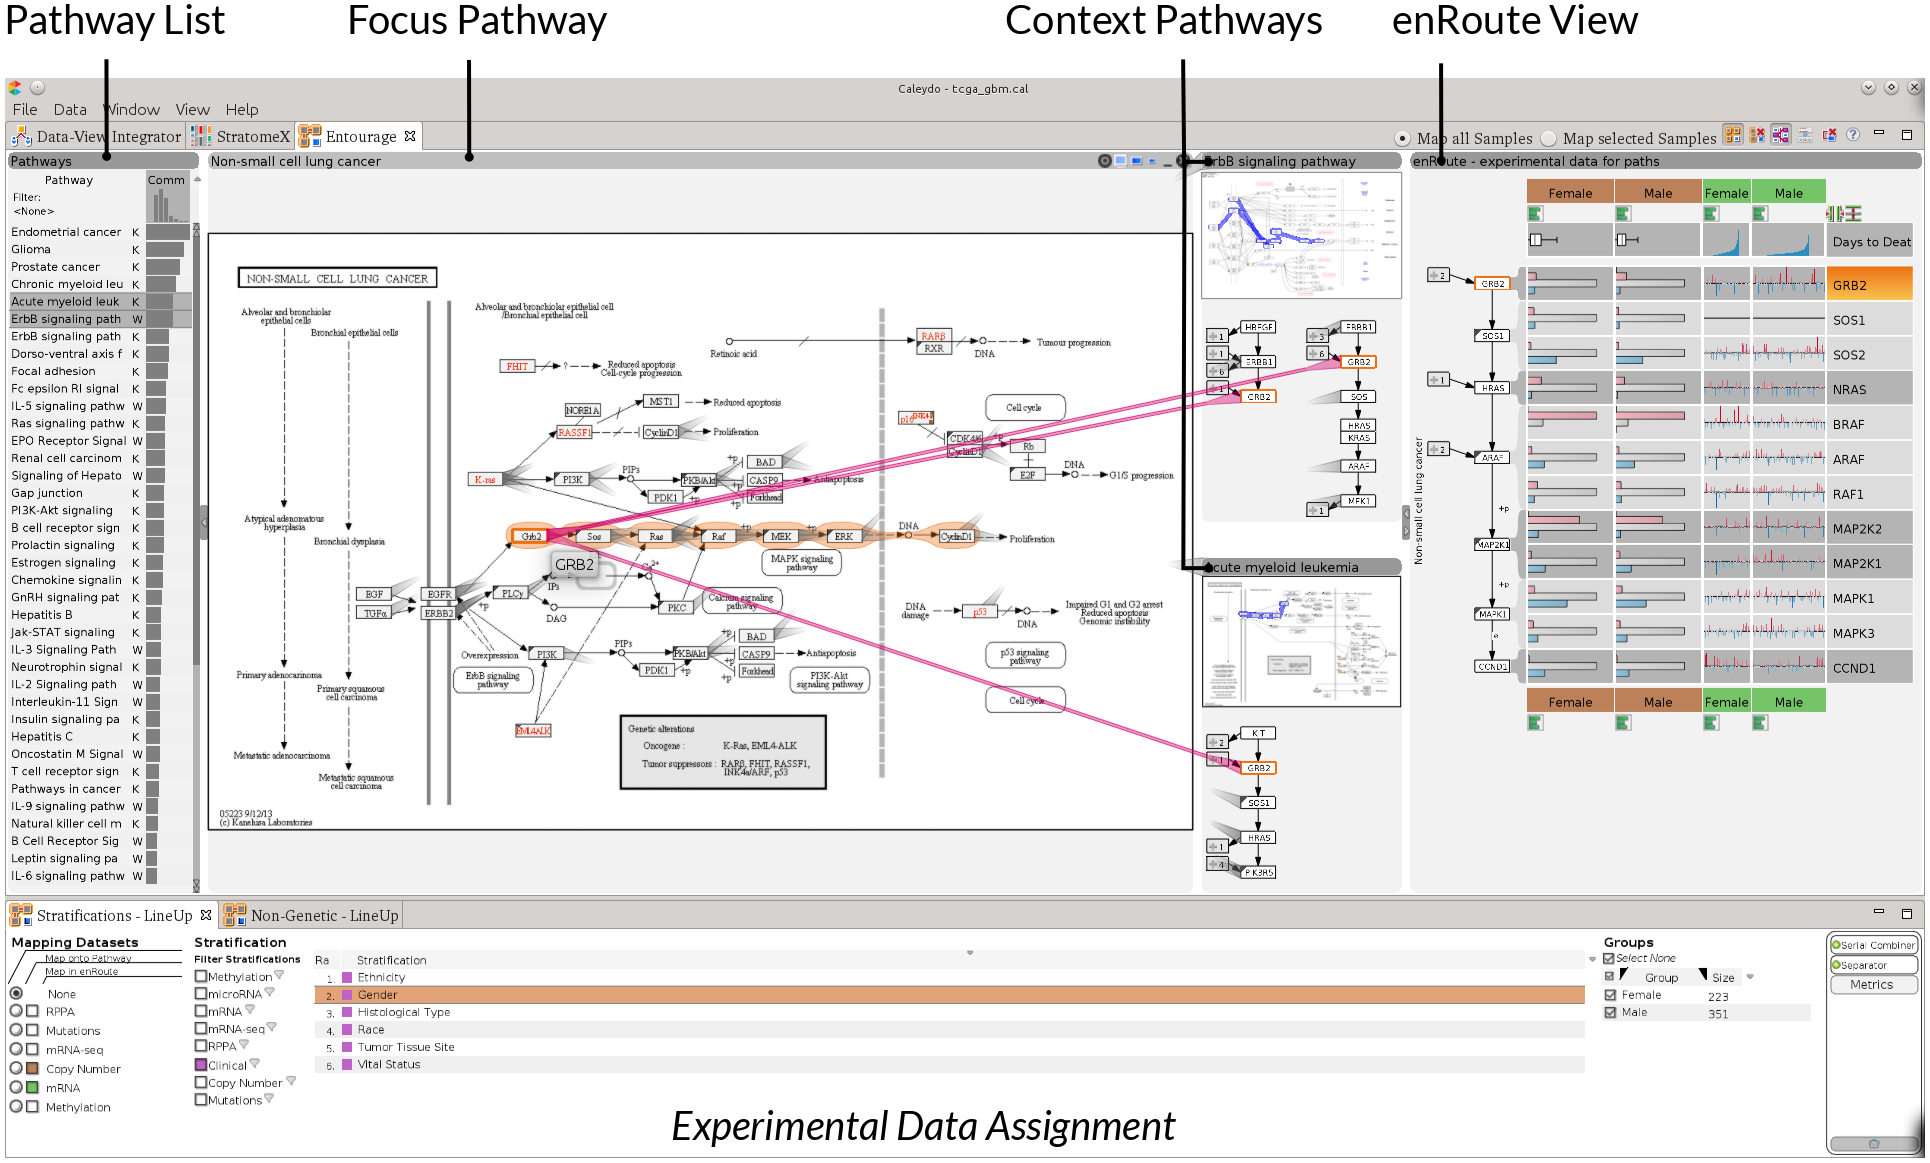 Pathway Visualizations Overview